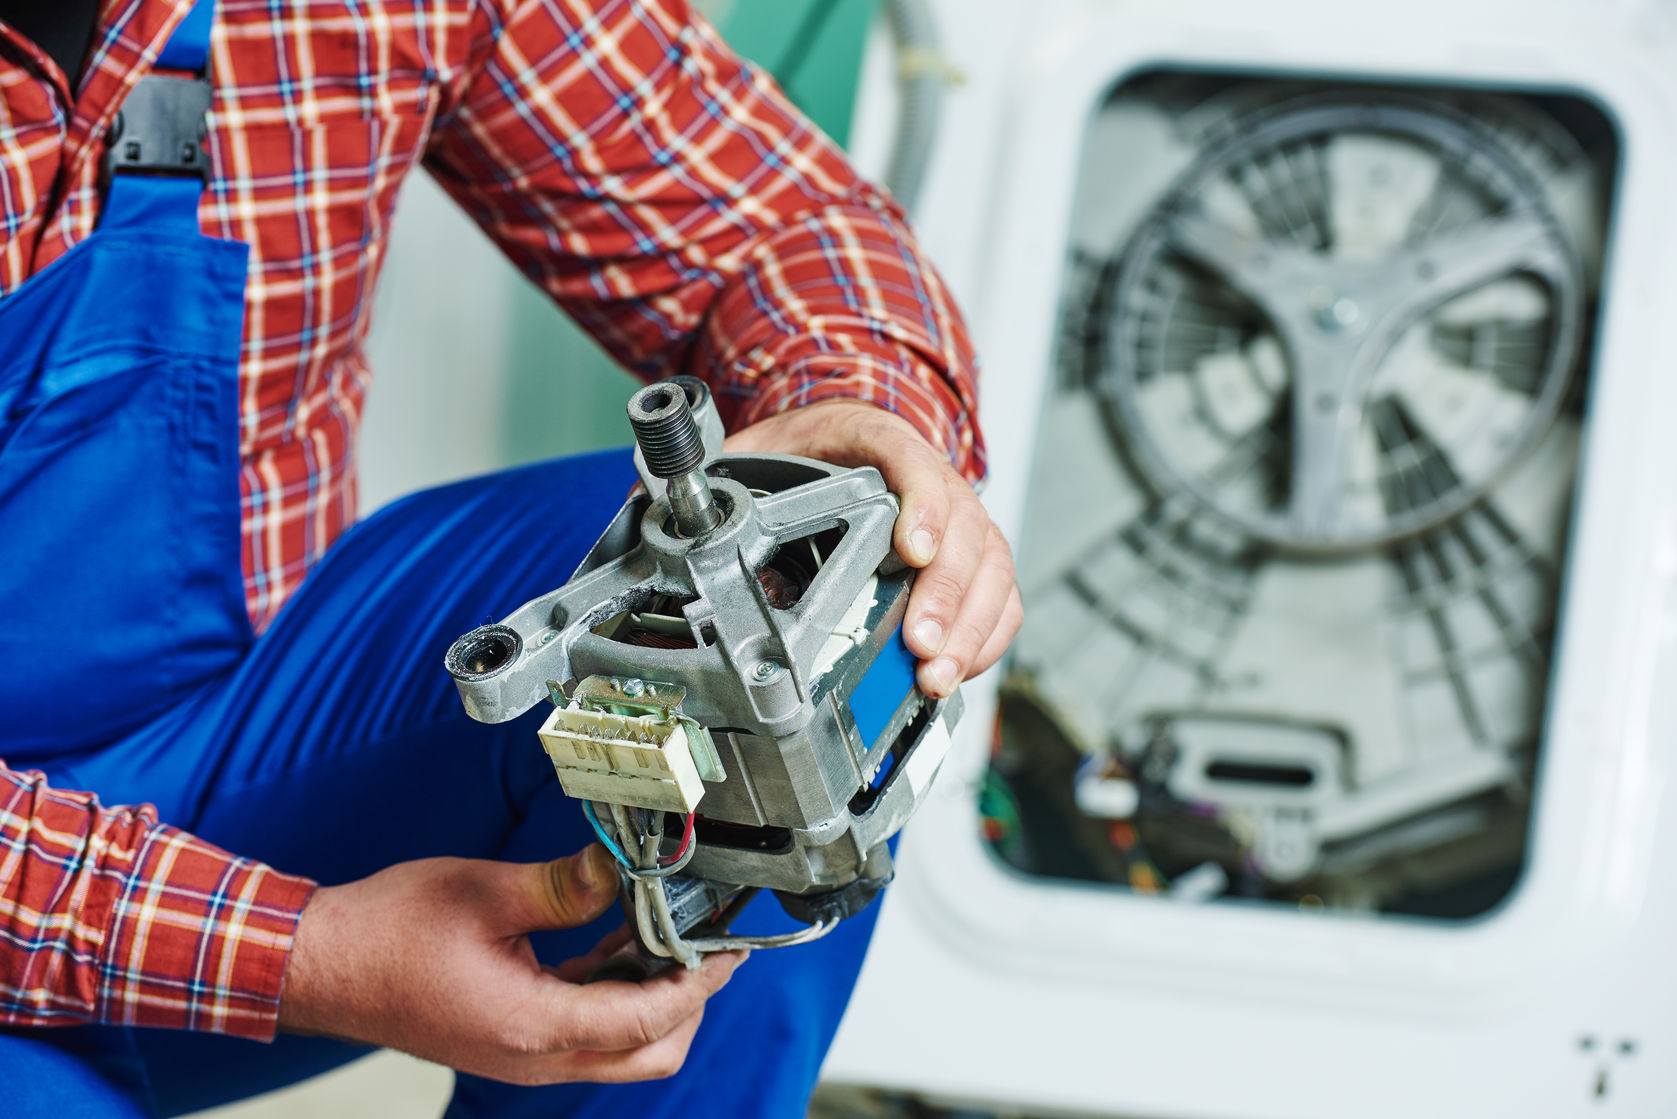 48960142 - washing machine repair. repairer hands with electric engine motor in front of damaged unit